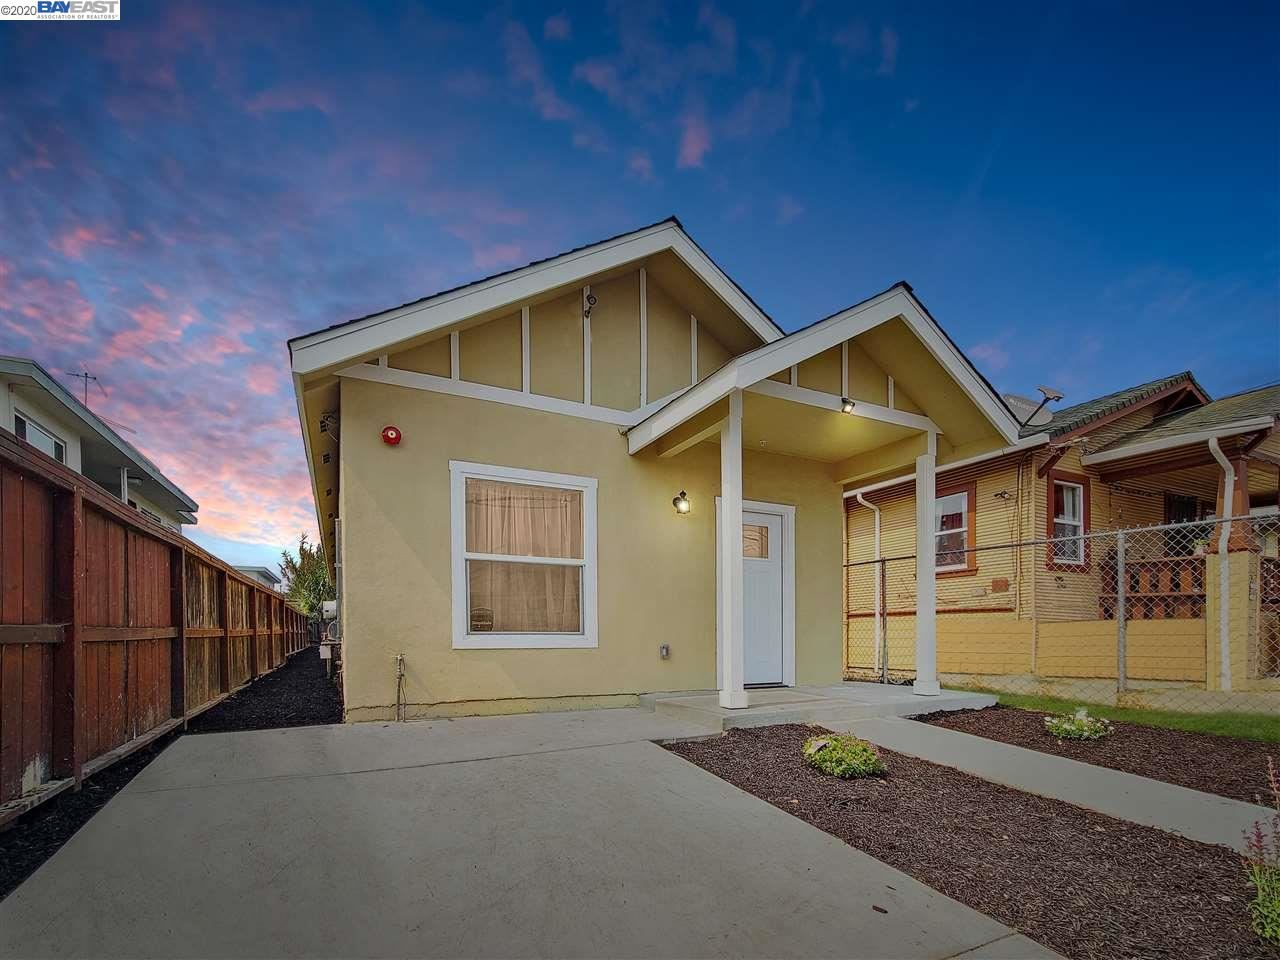 1725 62Nd Ave, Oakland, CA 94621 - MLS#: 40919353